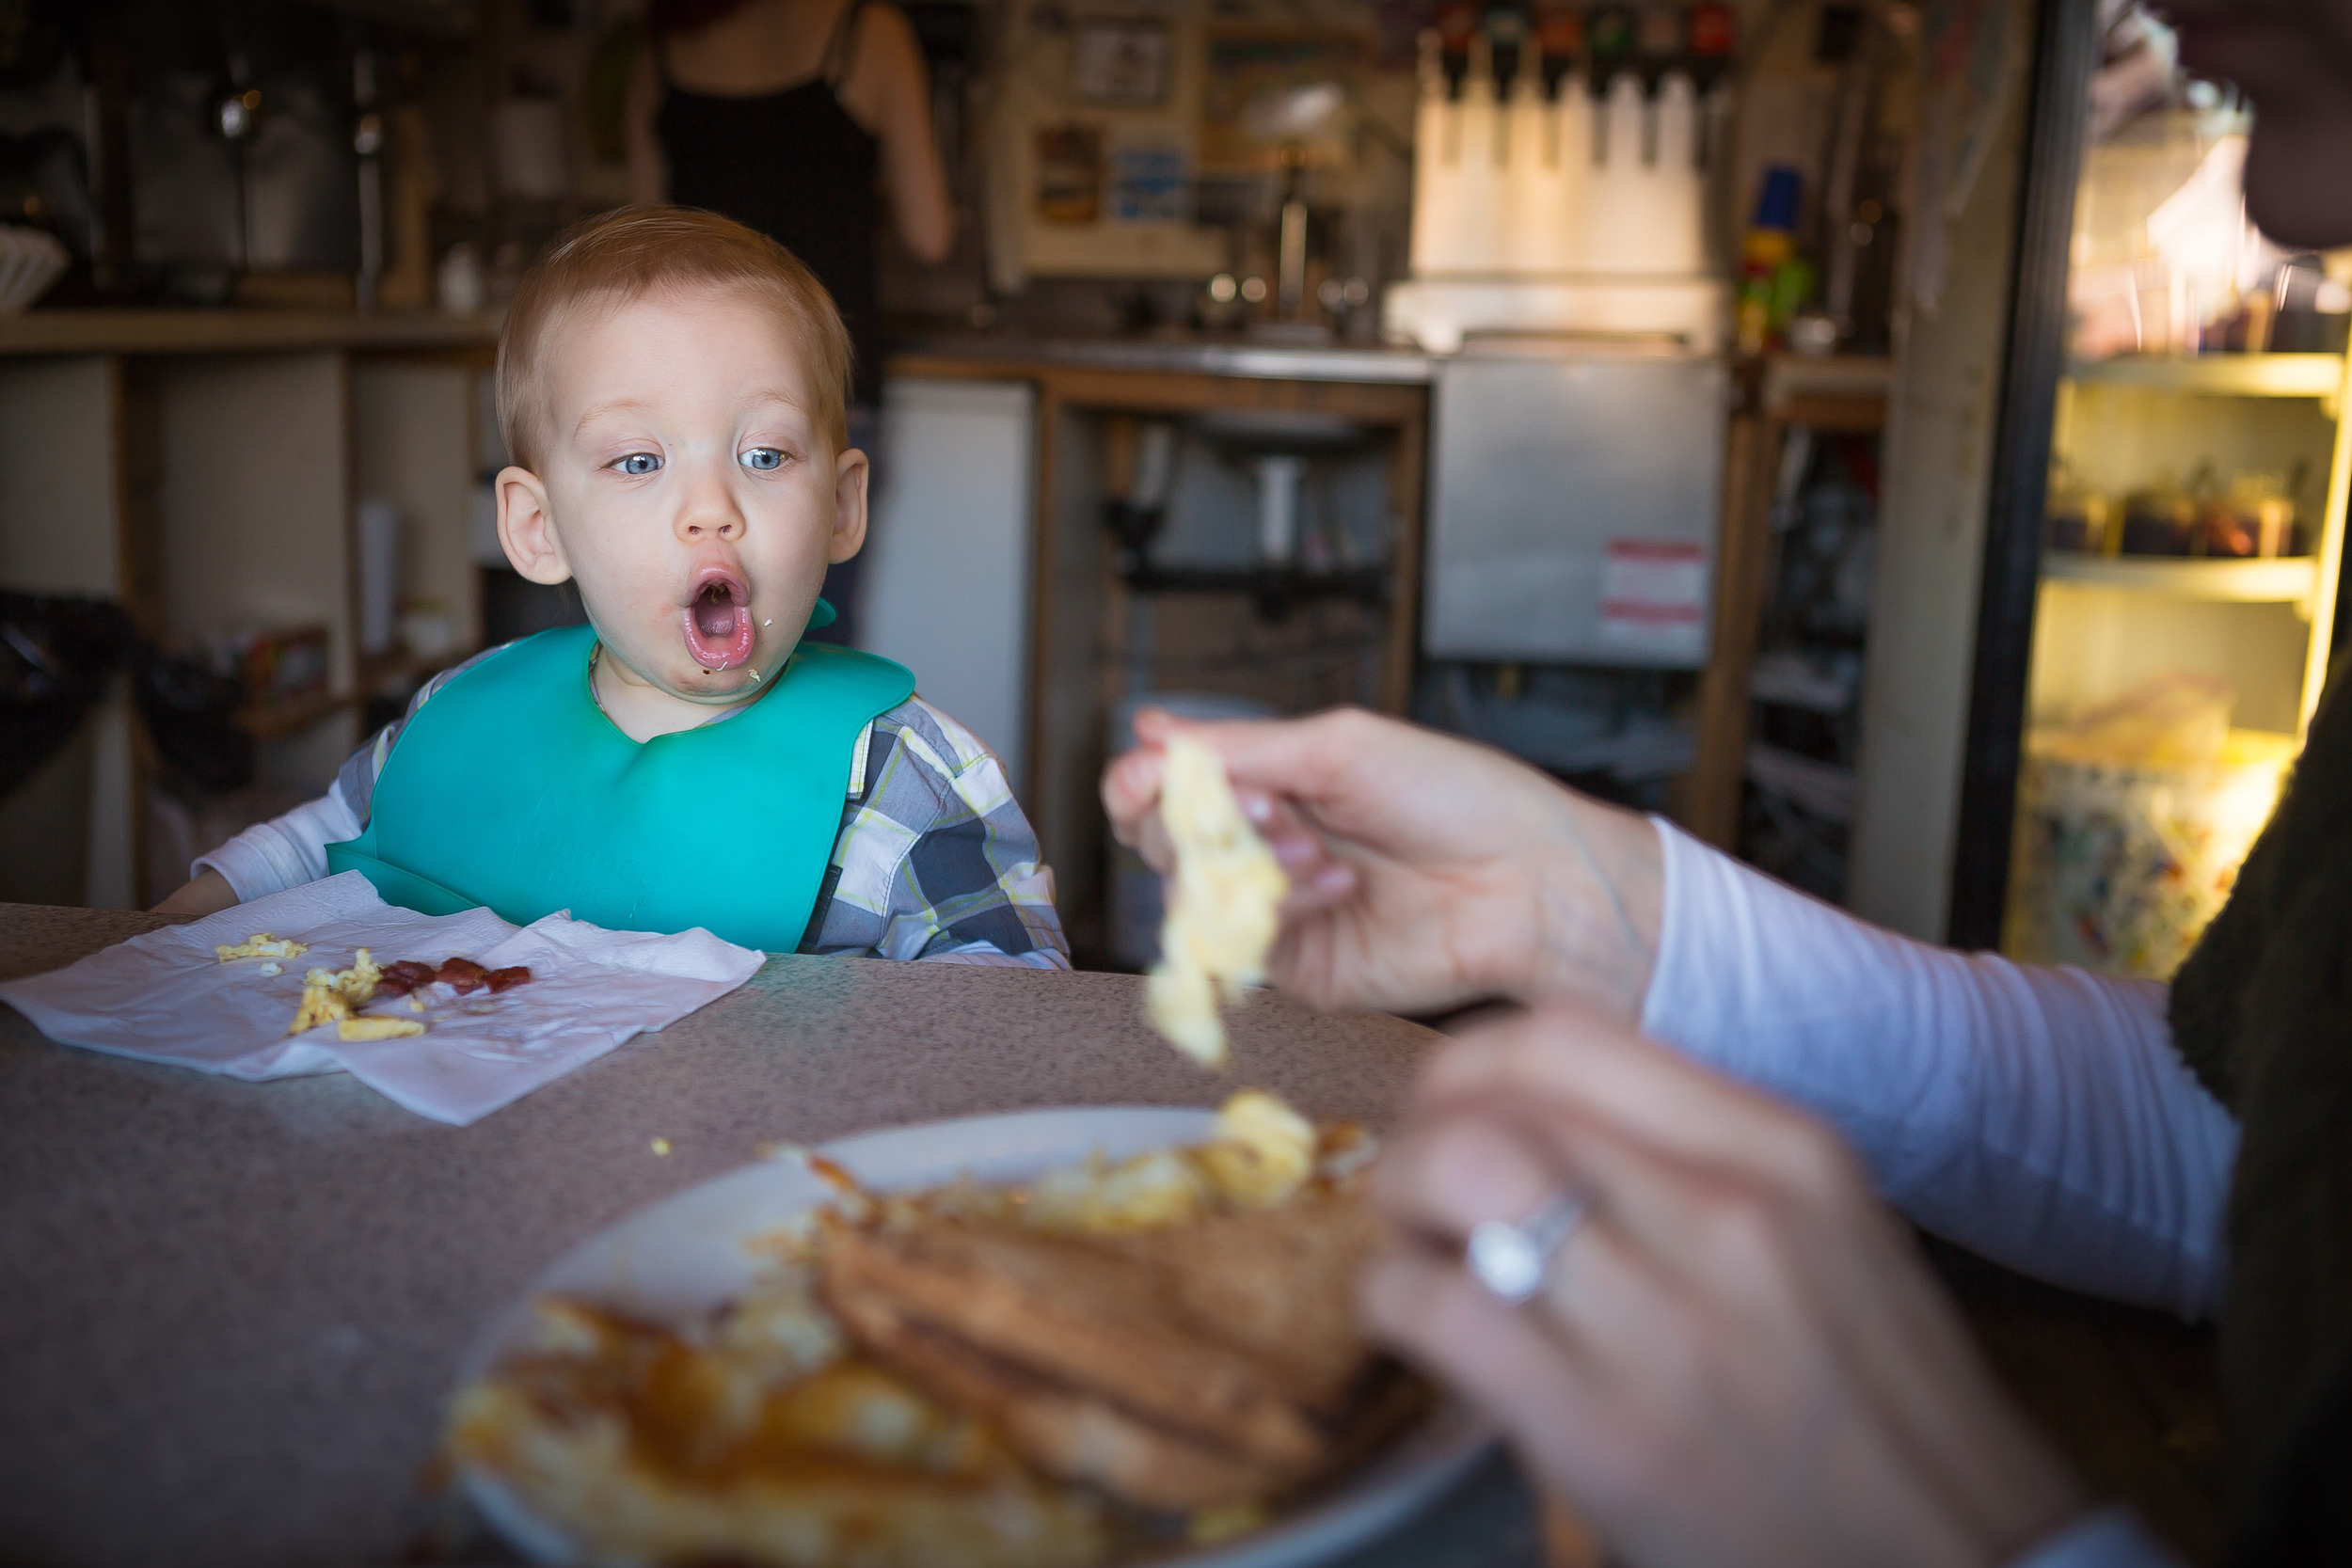 The AV was set at 2.8 for this picture of my son who wigged out when he saw the big plate of food they brought mom. If the AV had been high like a 22 then everything would be in focus and would draw attention away from the main focal point of the shock on my sons face.